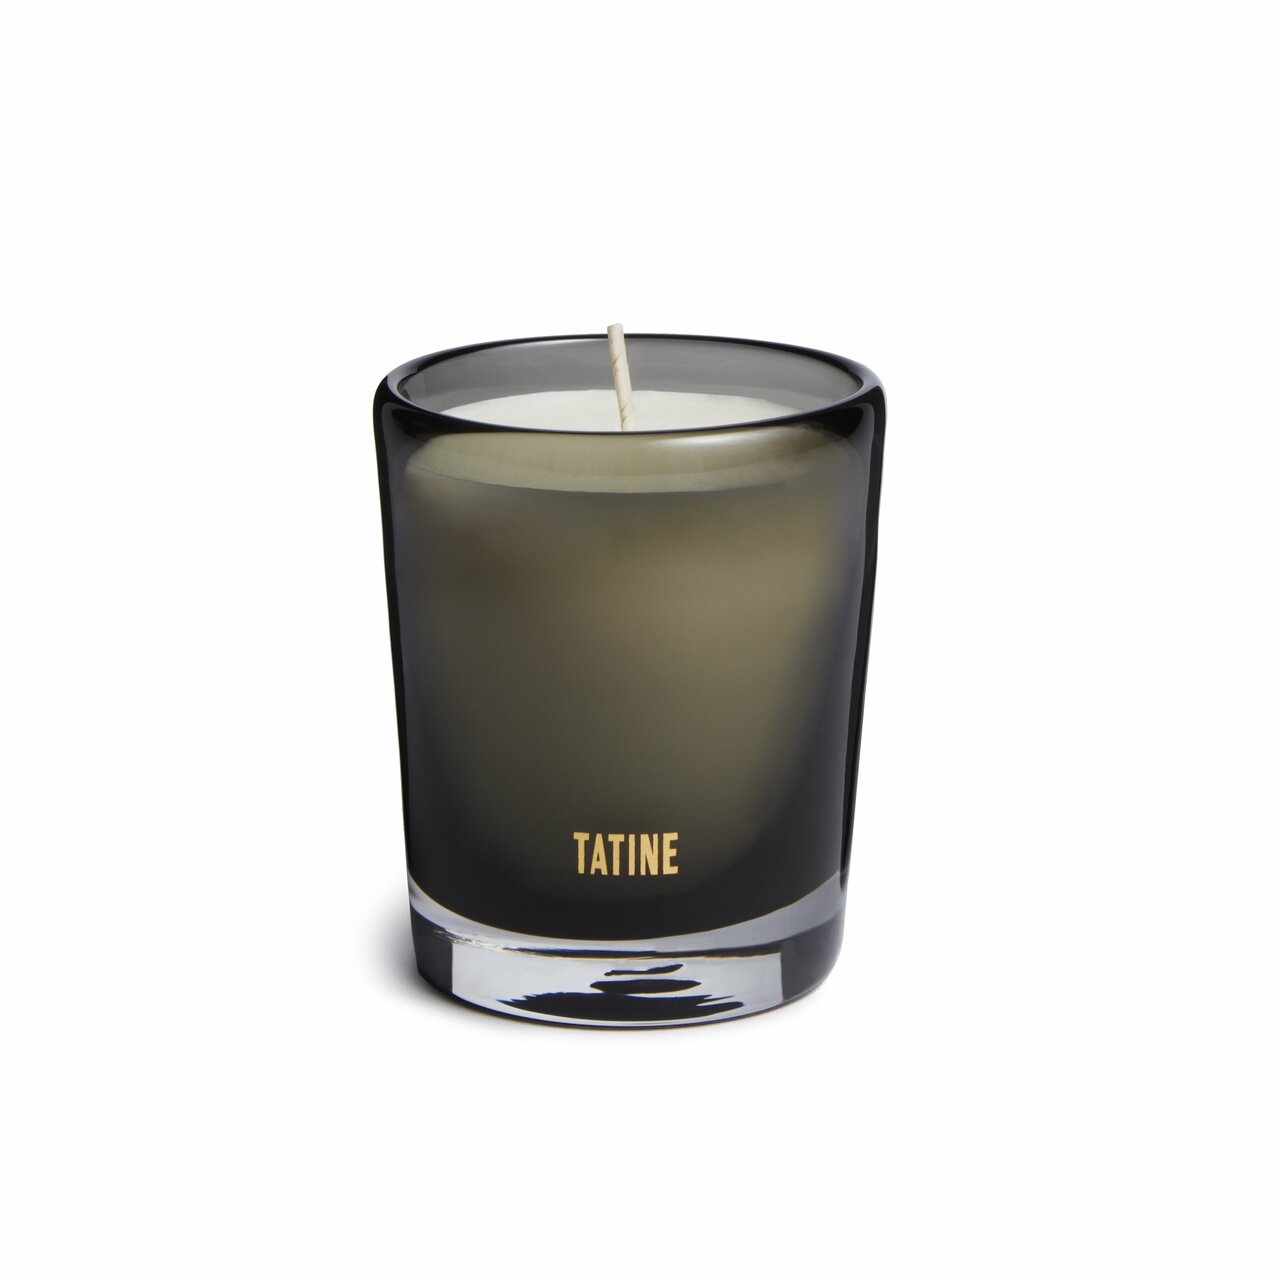 Each 8 oz. soy wax candle comes in its own unique, artisan mouth-blown smoke grey glass that can be repurposed.